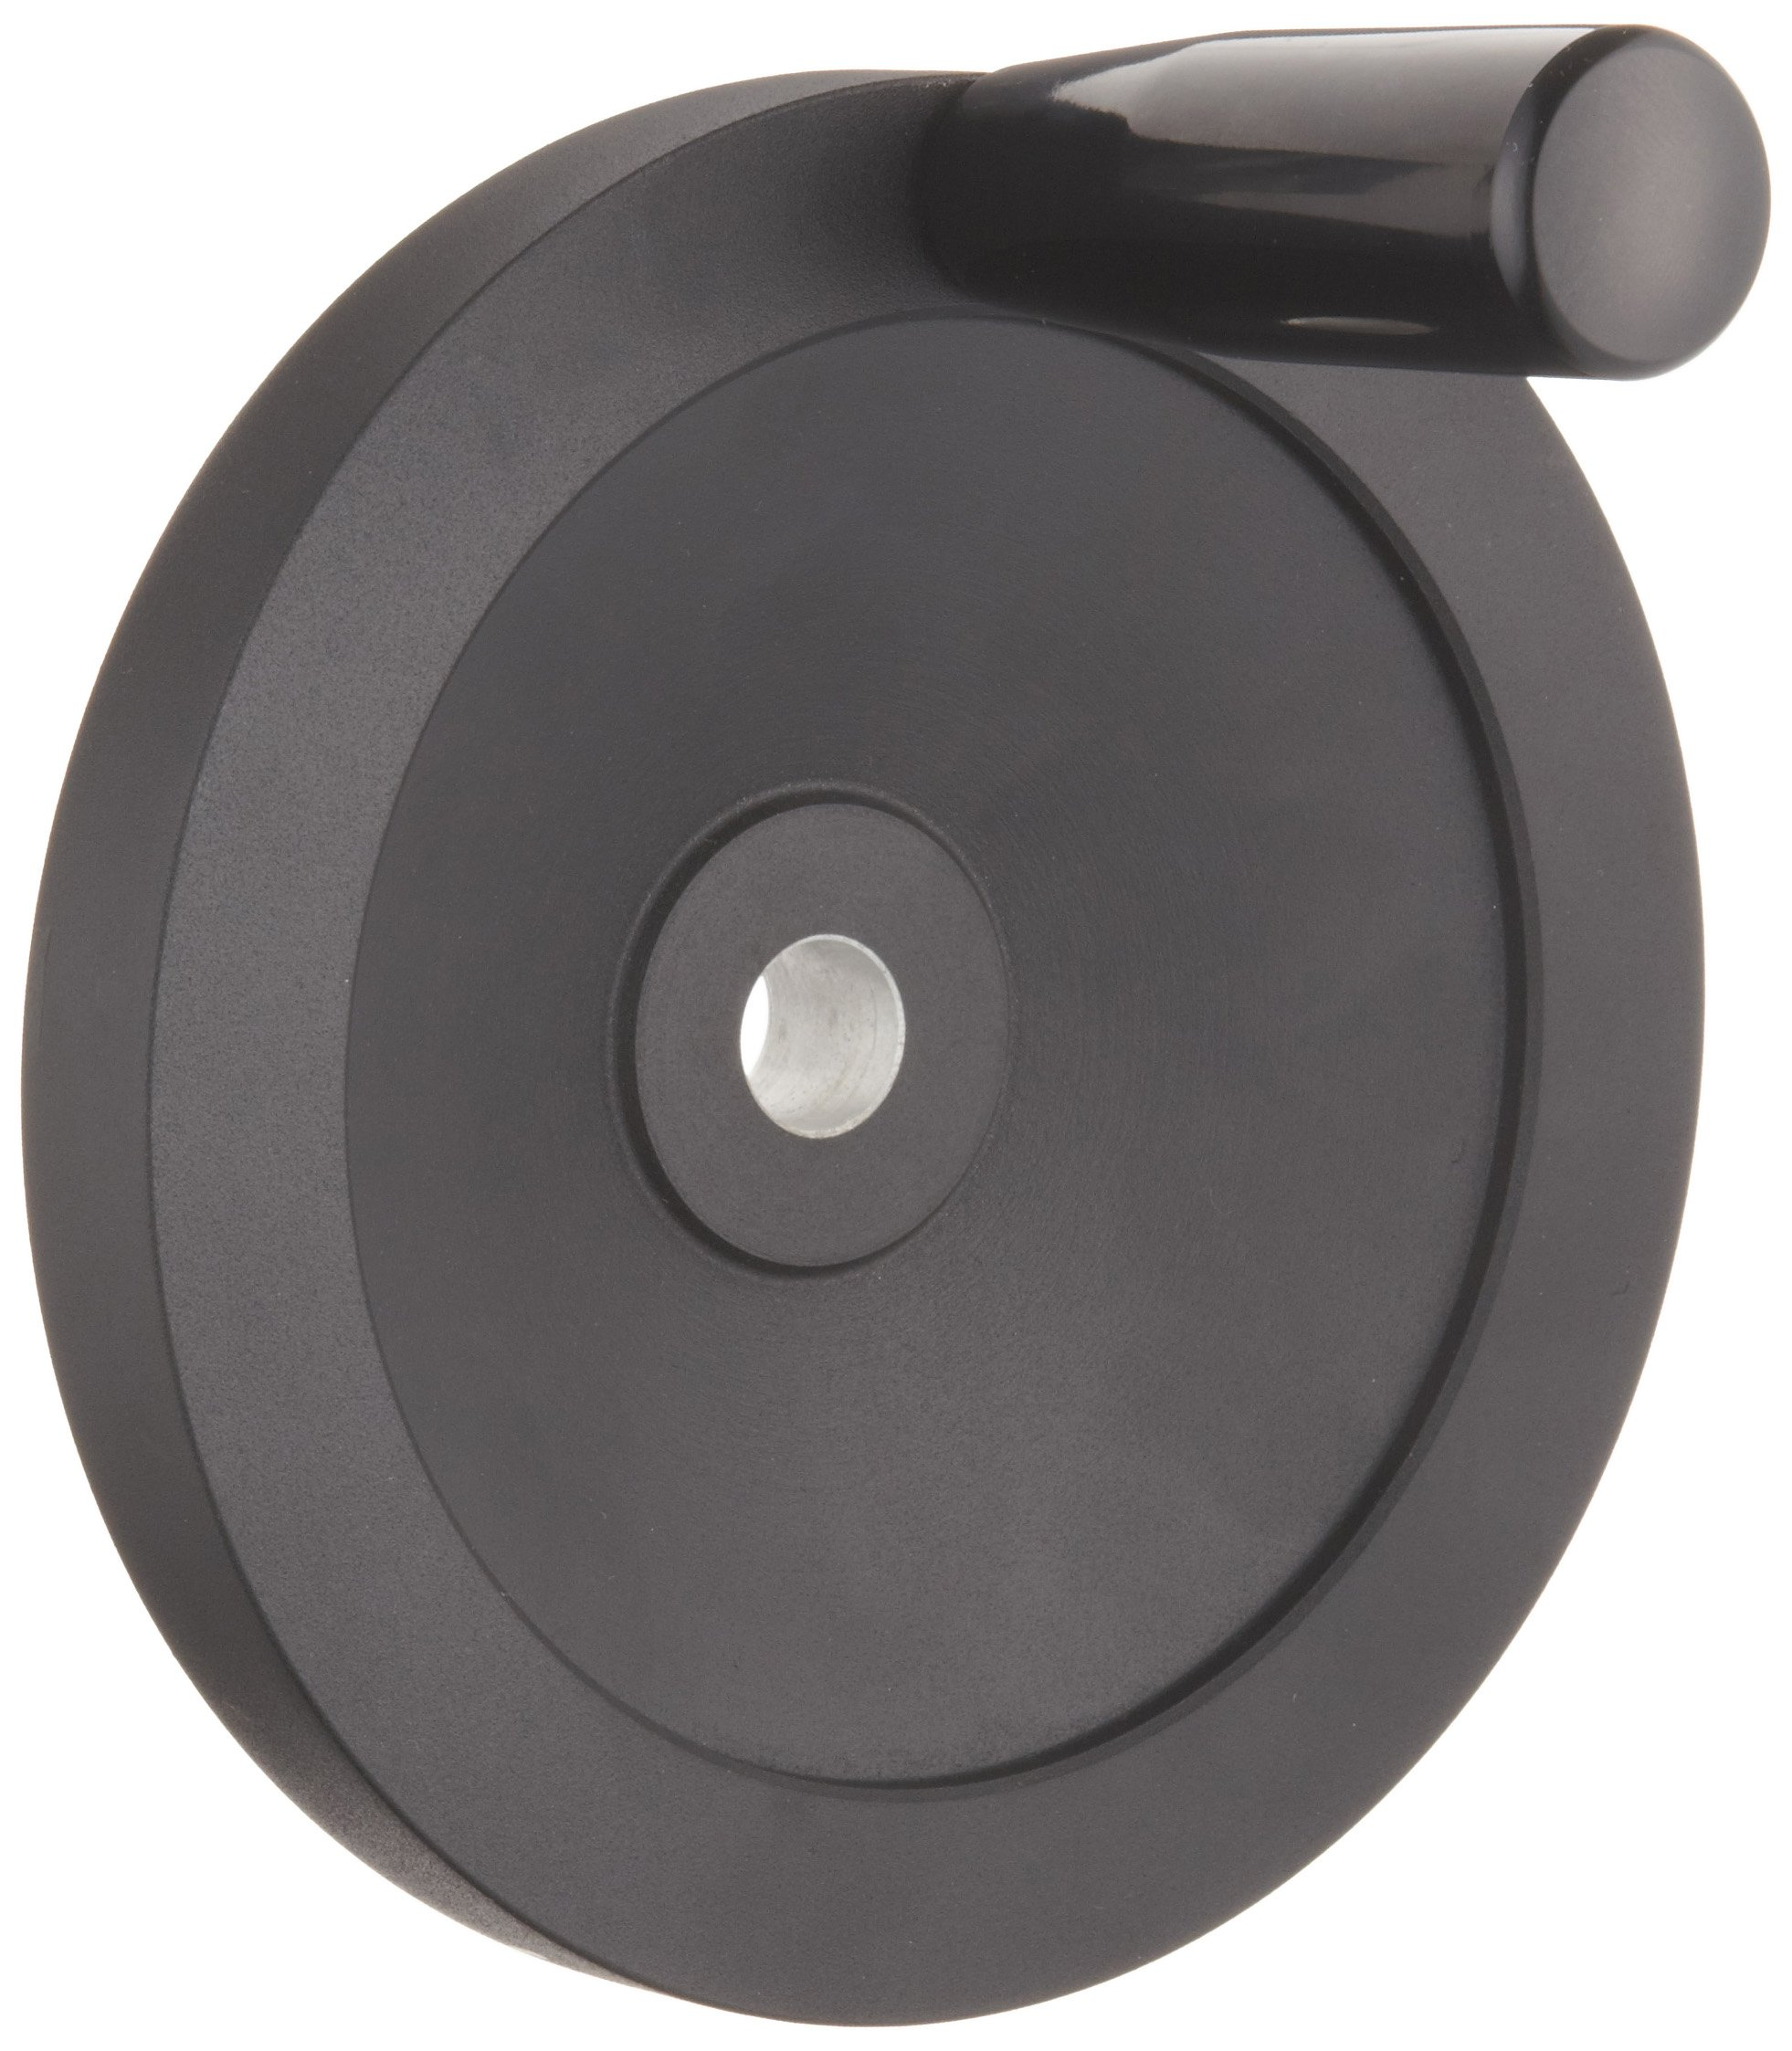 "Black Powder Coated Aluminum Dished Hand Wheel with Revolving Handle, 6-19/64"" Diameter, 5/8"" Hole Diameter (Pack of 1)"